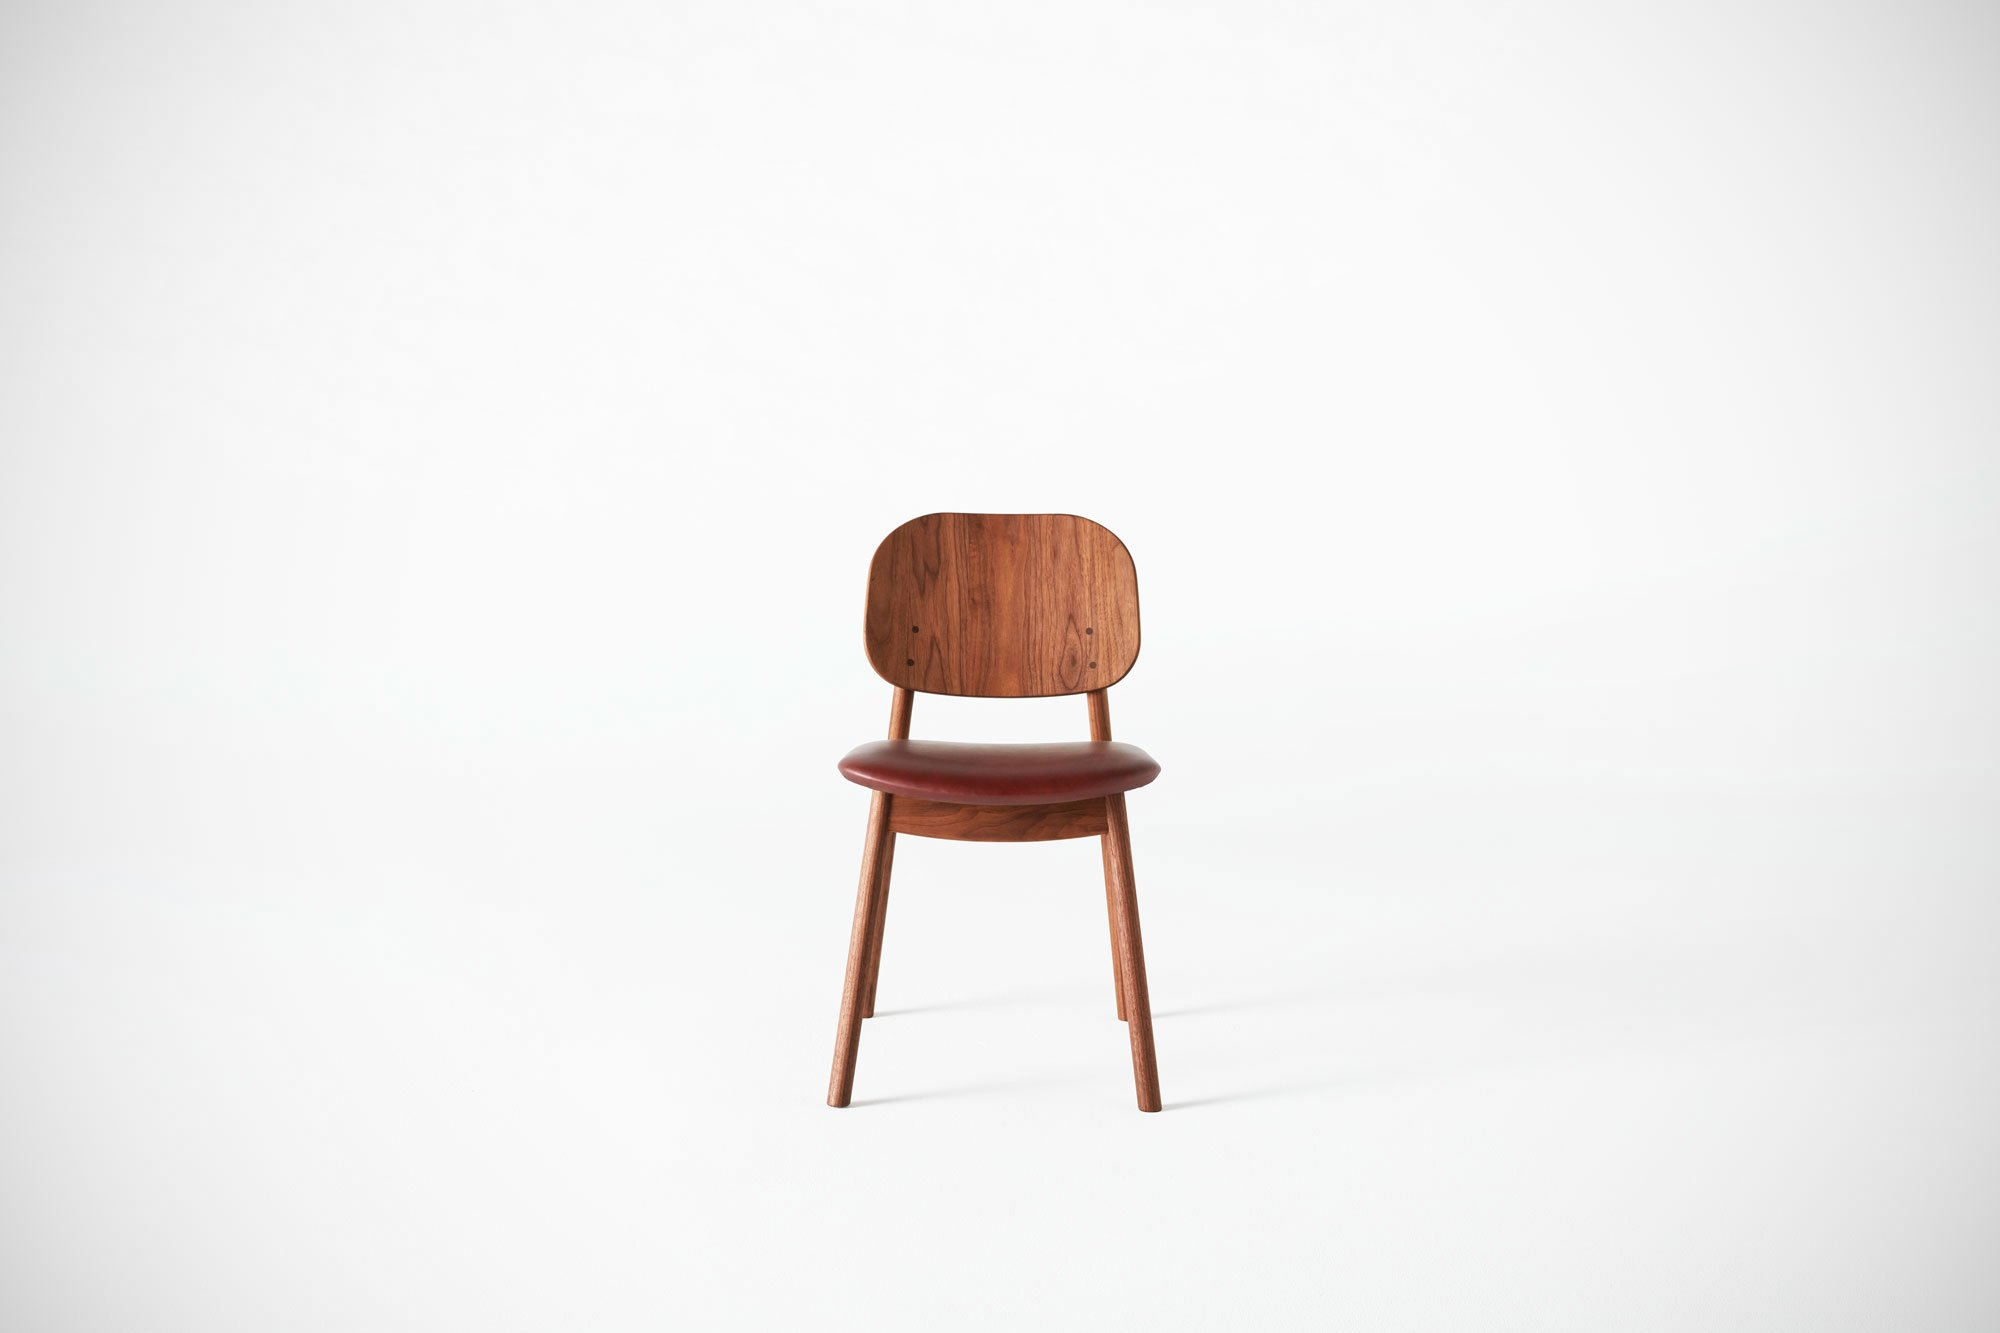 Minimal Furniture Design The YU Range Designed by Mikiya Kobayashi